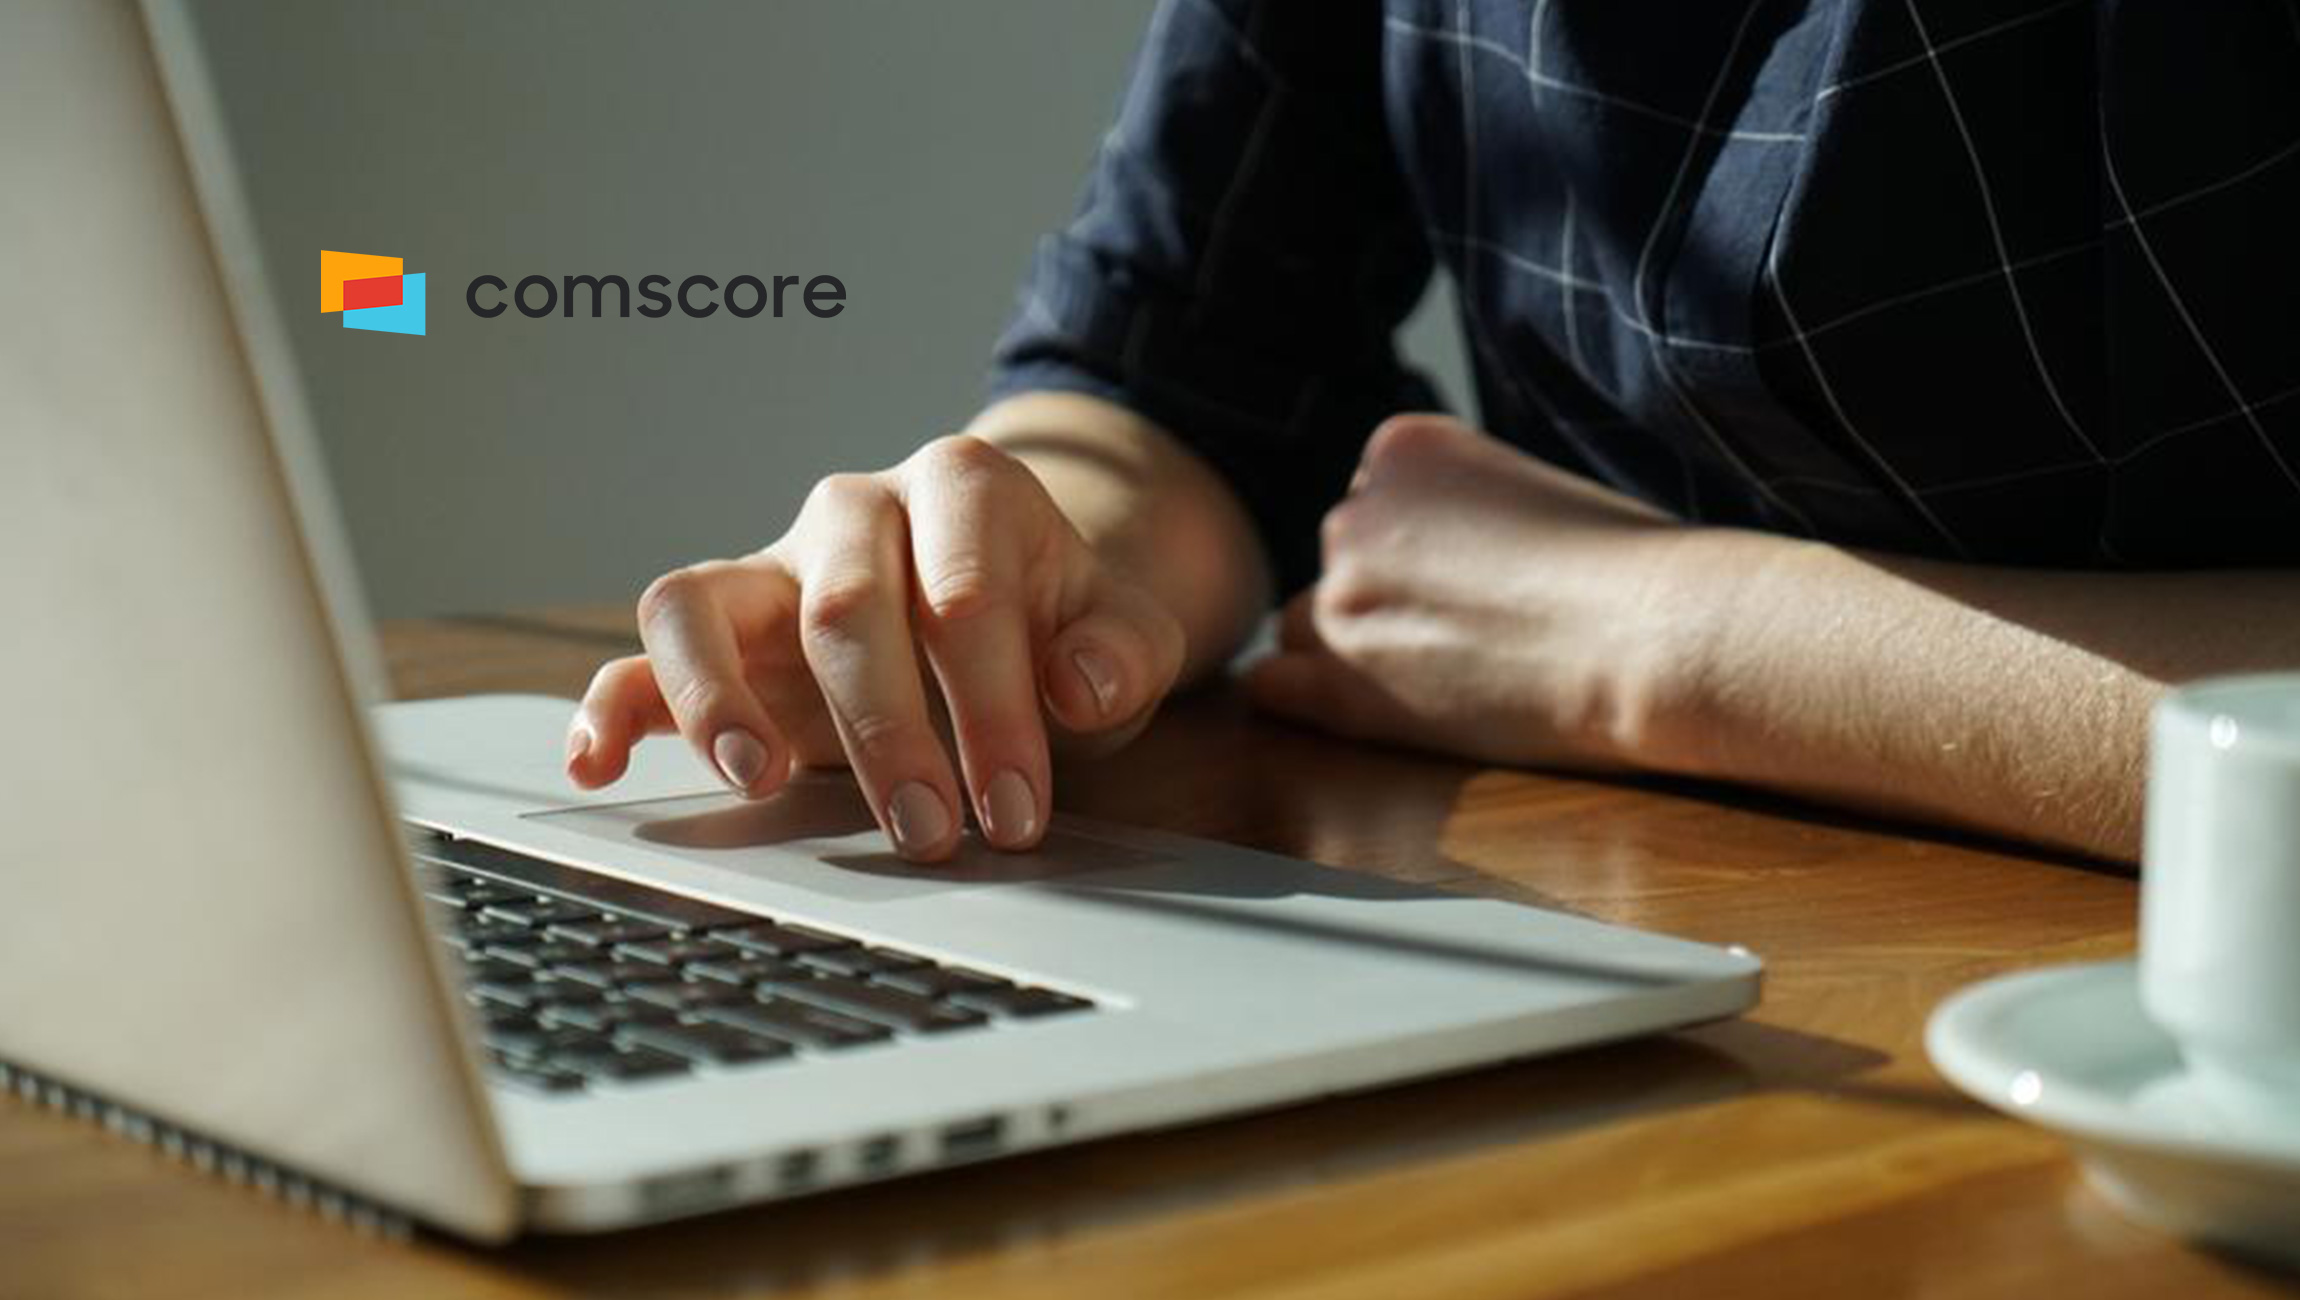 Comscore Announces Multi-Year Agreement with Xandr as Measurement Partner for Leading Addressable Advertising Consortium